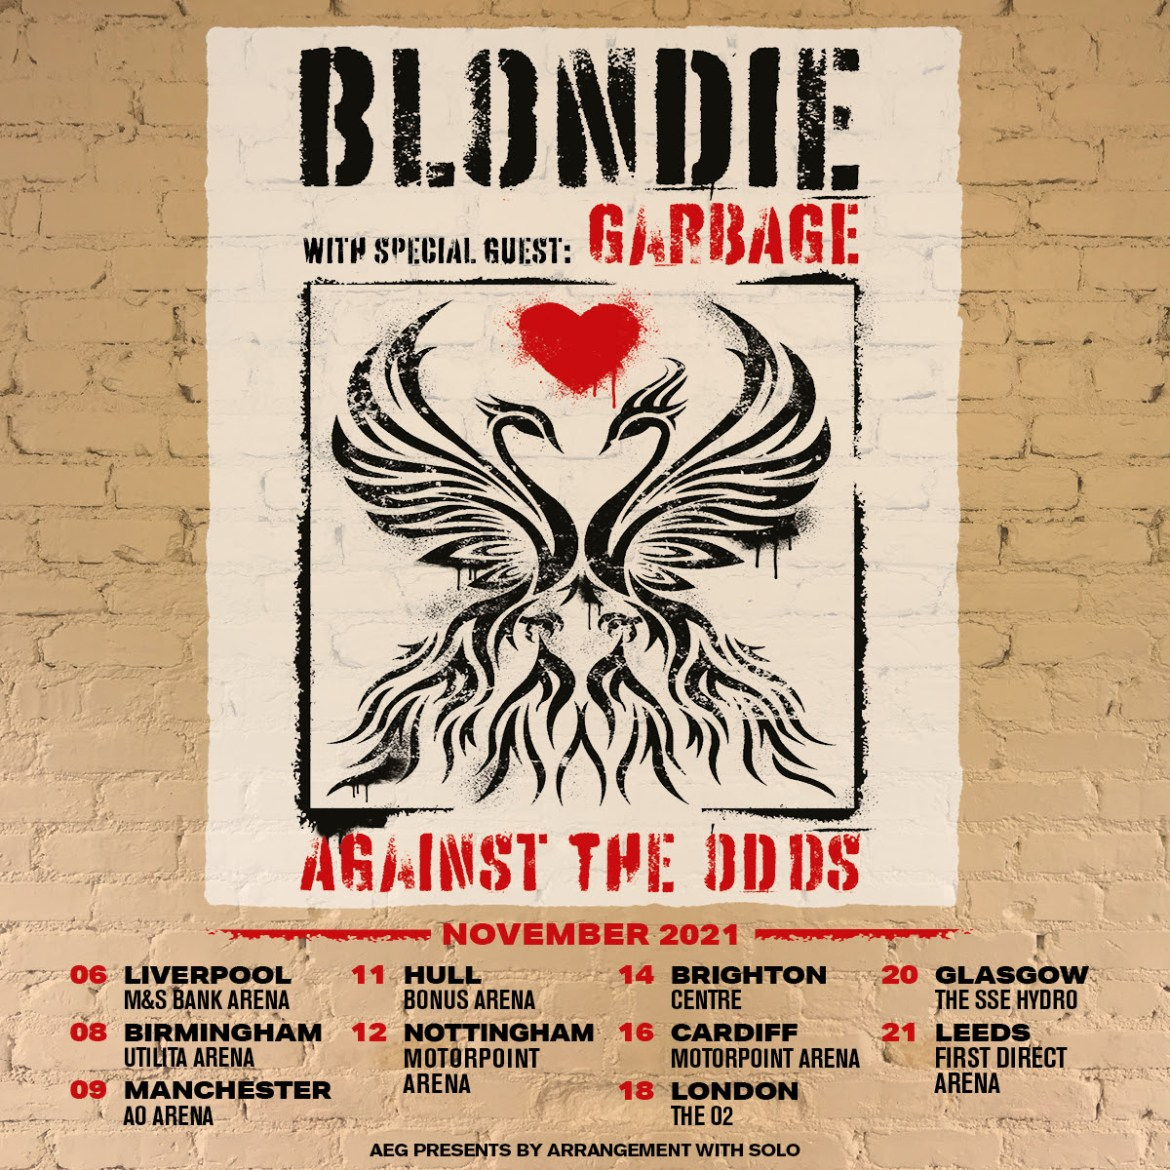 NEWS: Blondie announce UK tour for 2021 supported by Garbage